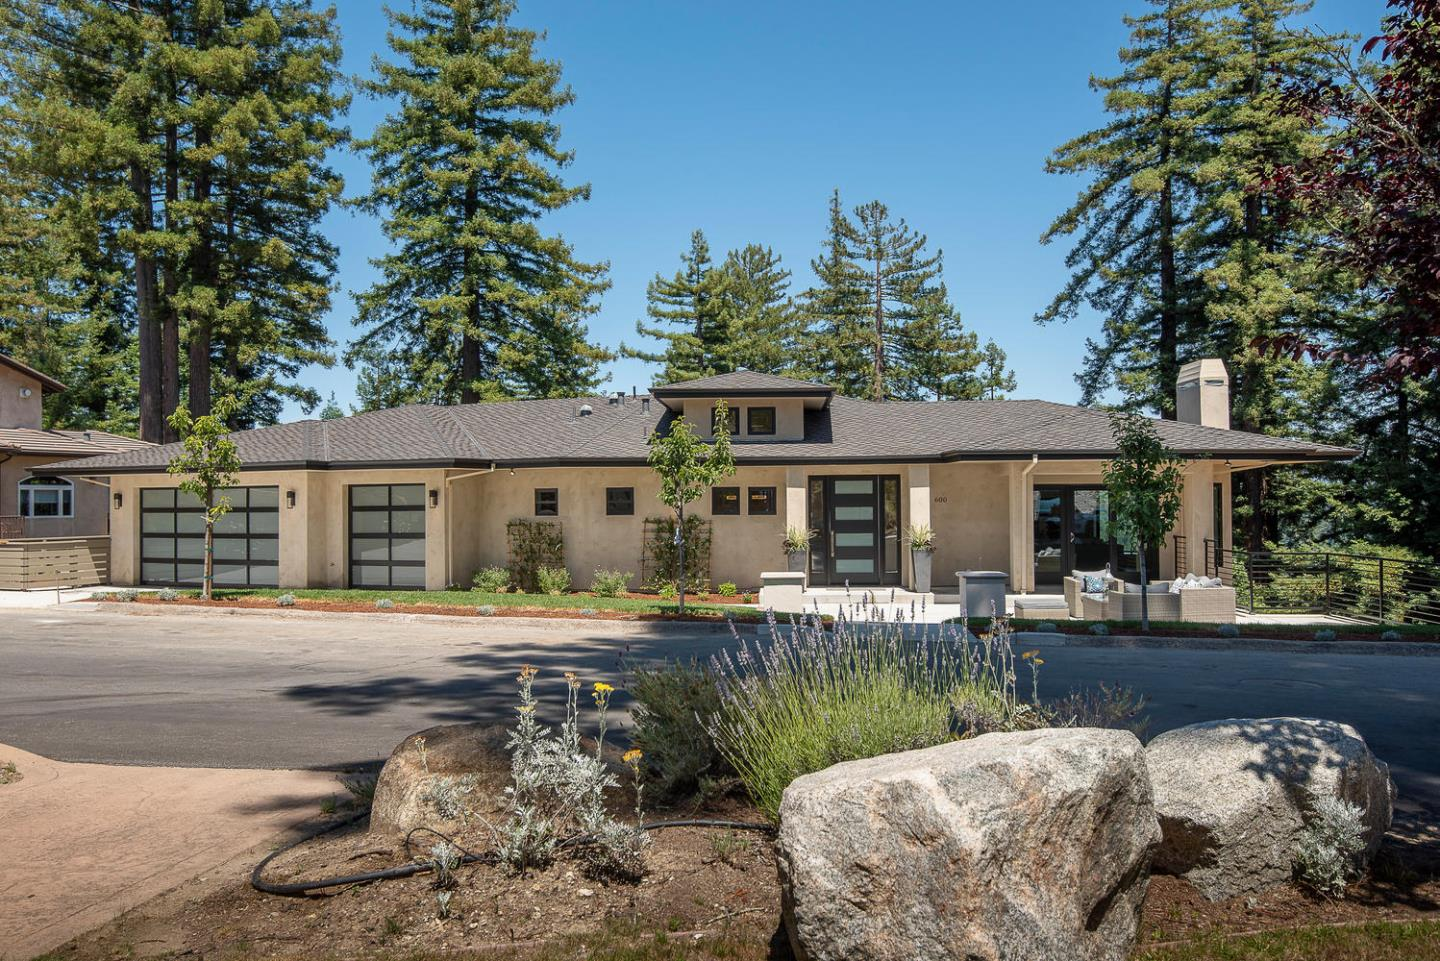 ***Ideal for 2 families- 2 br, 2 ba at ground level, 3 br, 2 bath at lower level**A rare find***A new home just completed.**Enjoy all the pleasure & freedom of living high above views of majestic redwoods & the ocean beyond in the small & peaceful community of Scotts Valley. A short distance from Los Gatos & Santa Cruz. Located in the prestigious Monte Fiore gated community, minutes from Silicon Valley. Close to all urban amenities yet secluded from it all. The Architecture is inspired by simplicity of Contemporary design. The kitchen features huge central island of Carrara quarts stone-the heart & center of this home. A perfect environment for family & friends gathering, cooking, dinning & celebrations. Huge family / rec. room / cinema w/ wet bar at lower level. 5th br could become the 2nd master suite w/ walk-in closet. Spacious wine cellar & 3 car garage. Enjoy a magnificent .46-acre cul-de-sac view site in a private setting for indoor / outdoor living, festive entertaining & play.